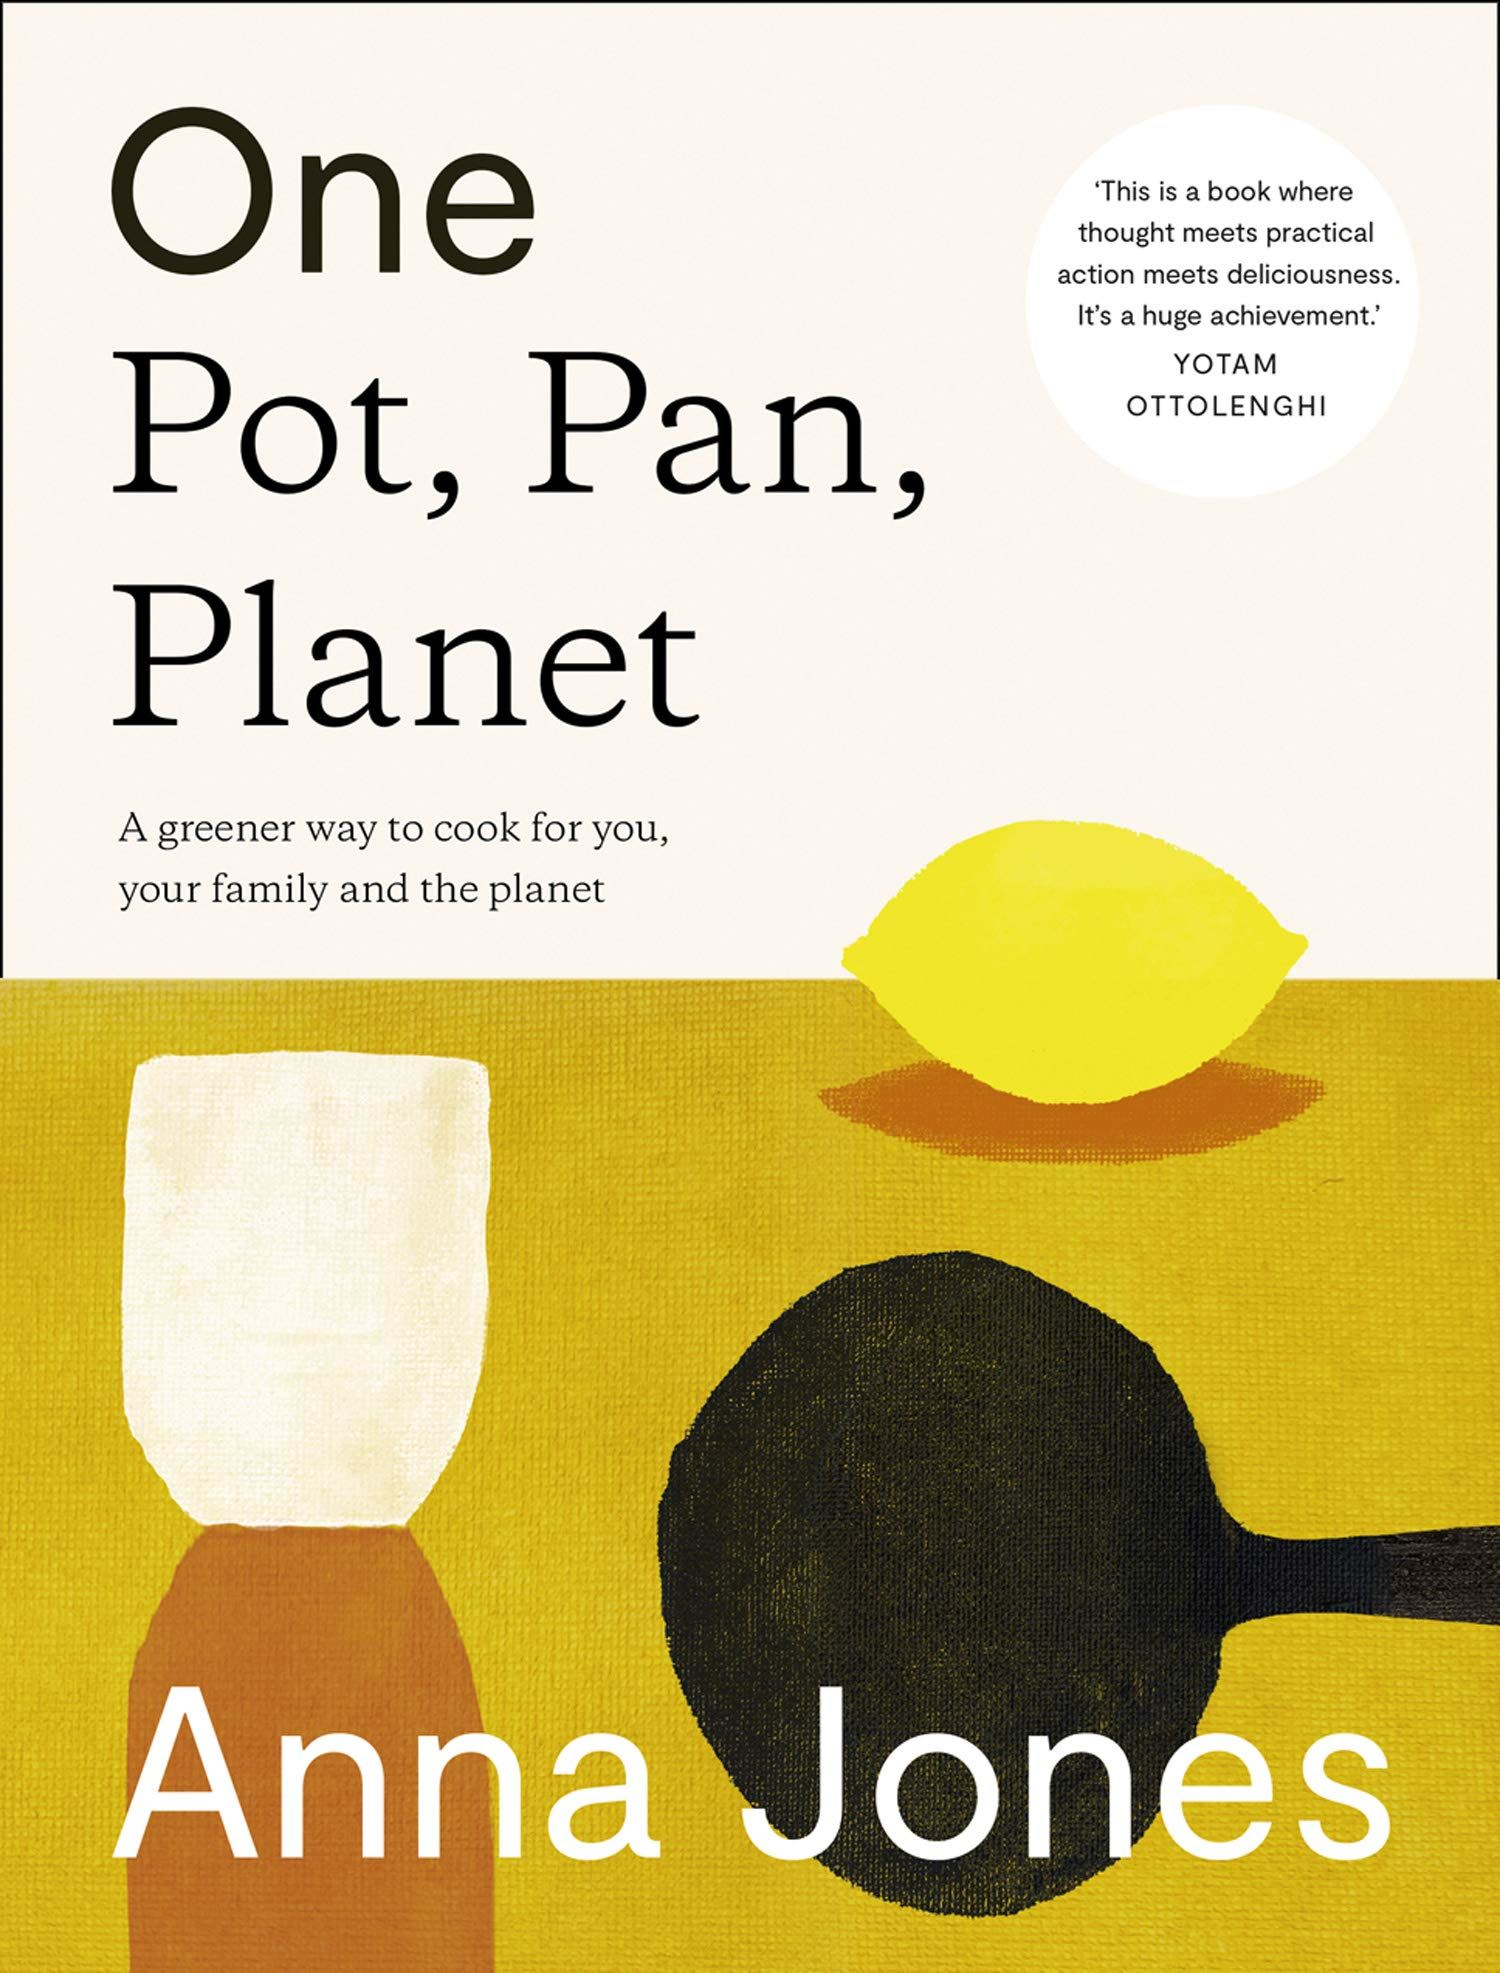 One Pot, Pan, Planet Cookery Book